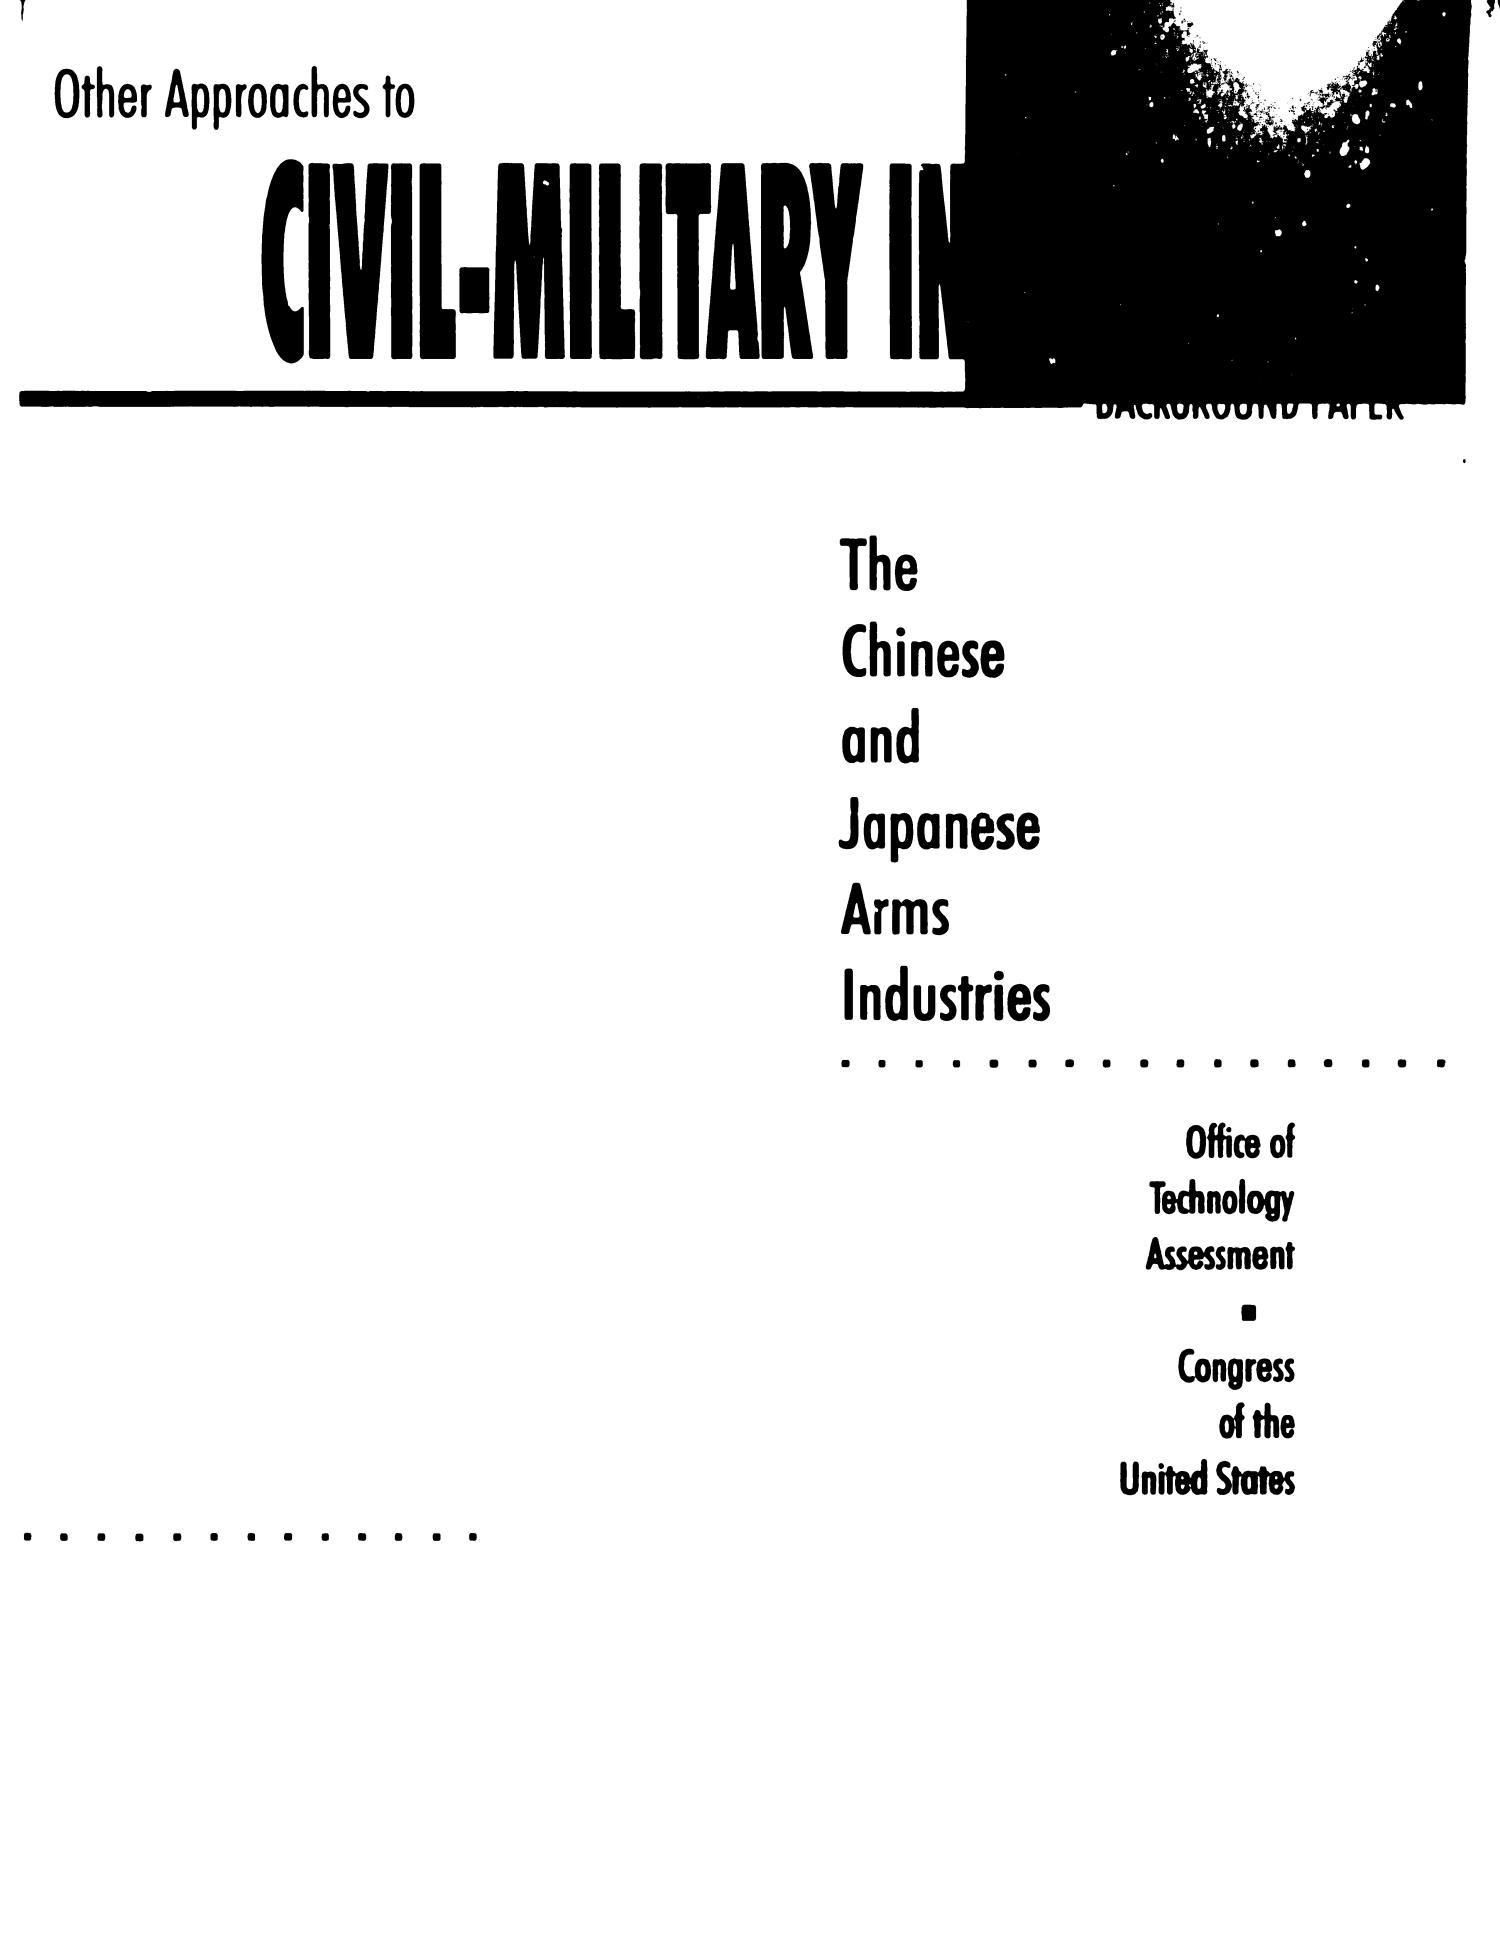 Other approaches to civil-military integration: background